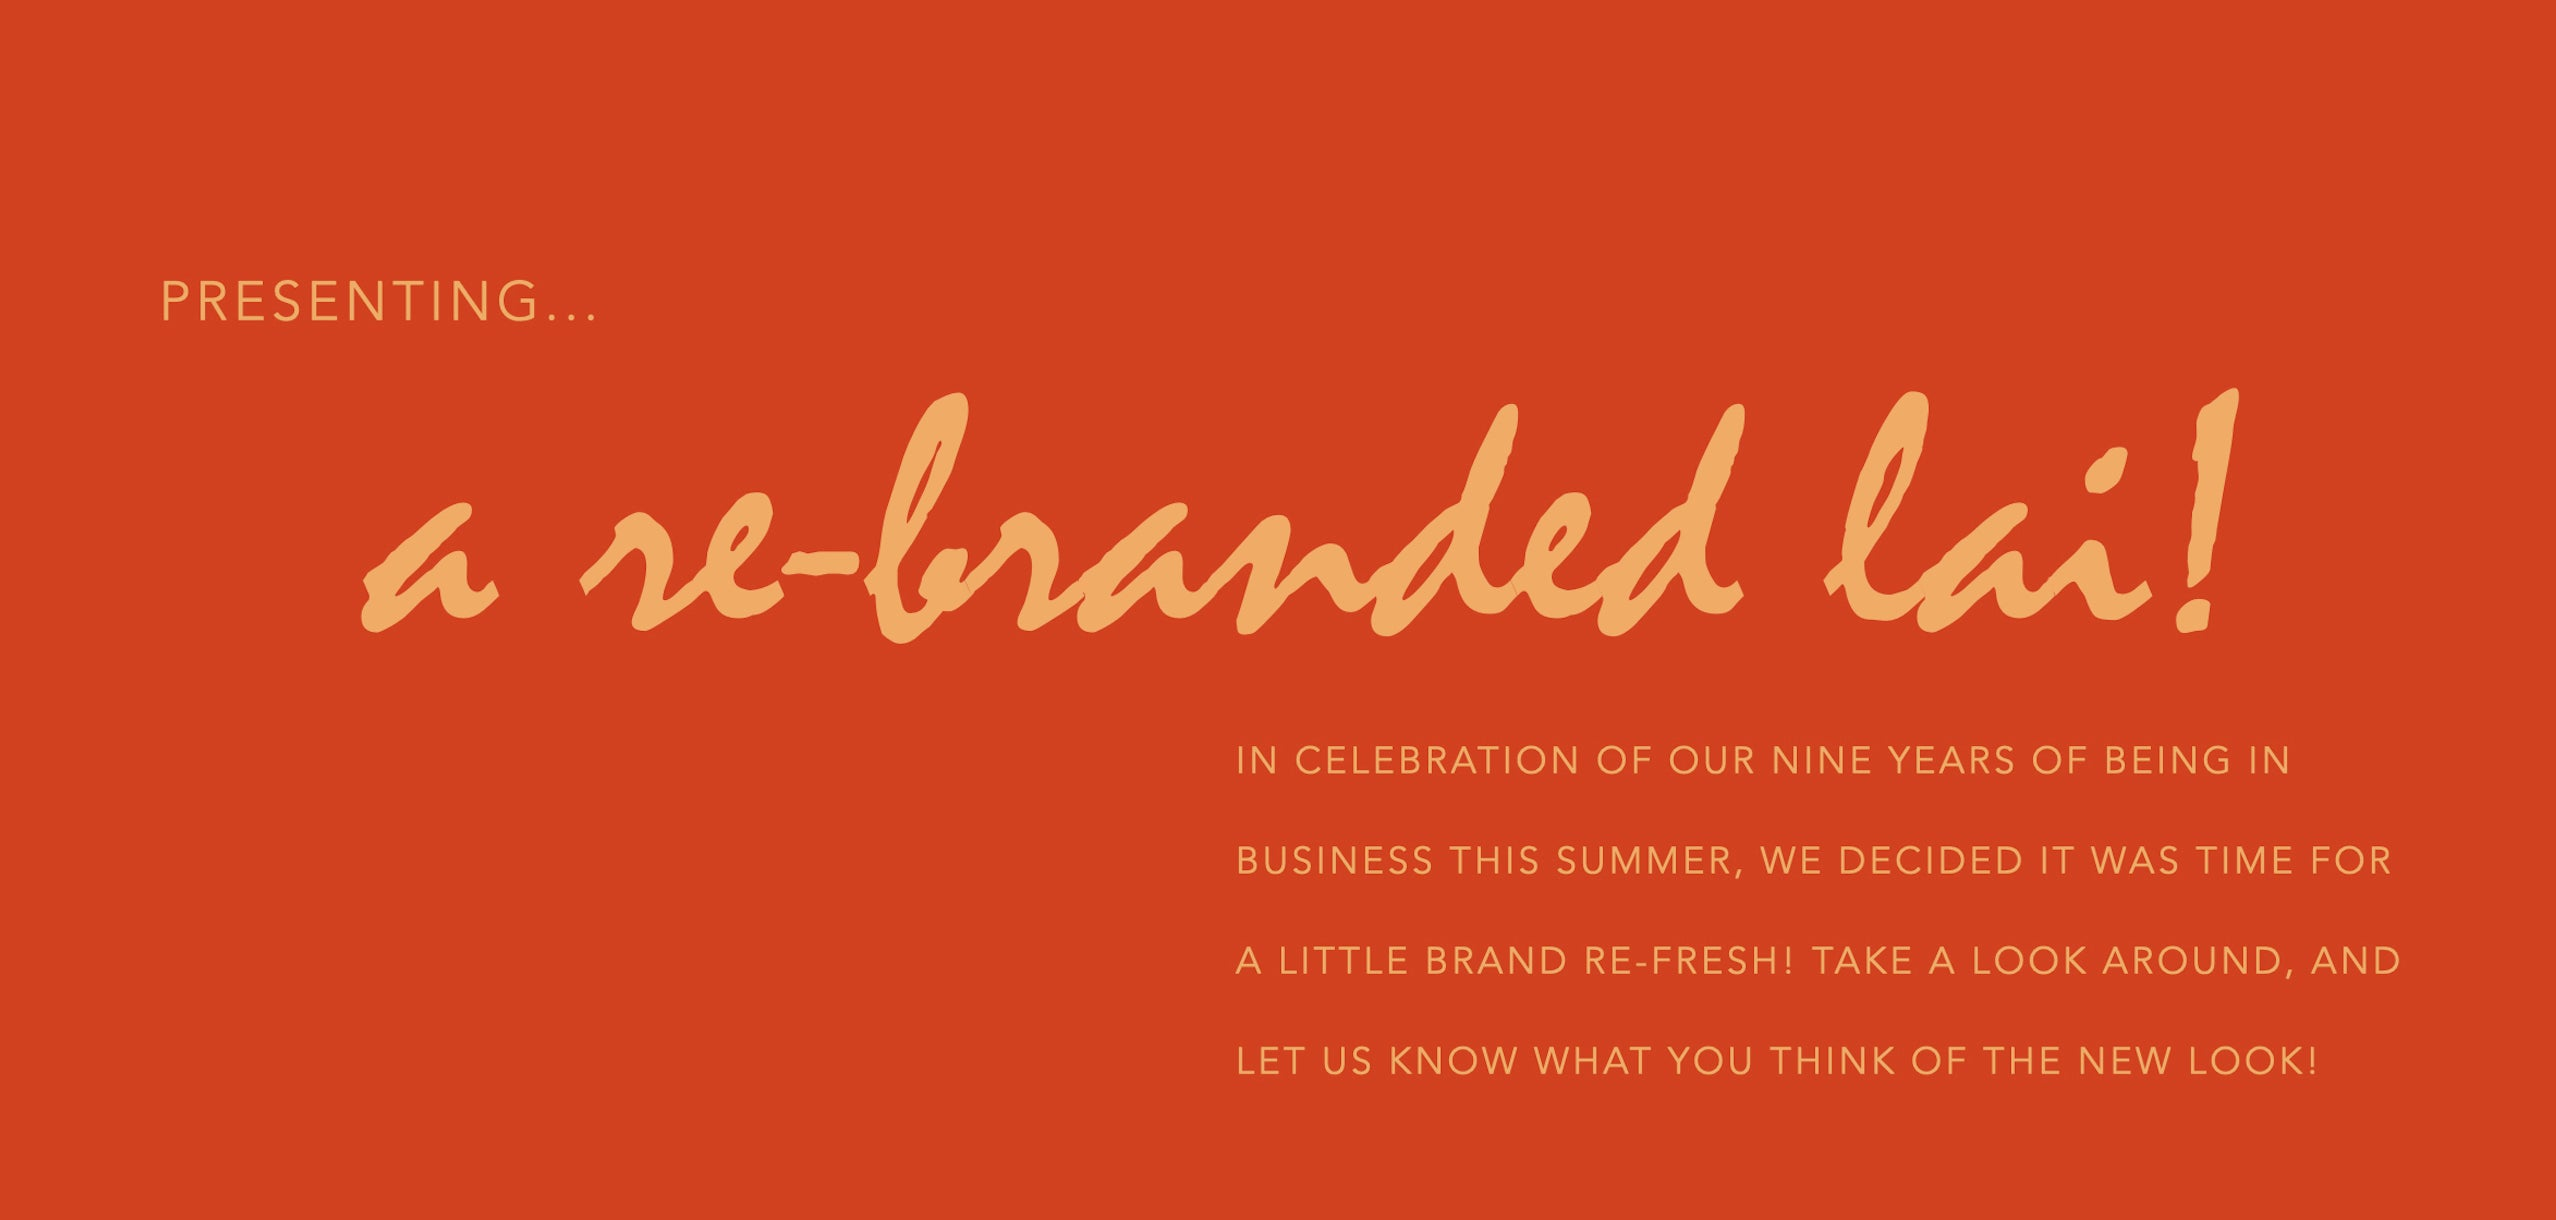 Lai rebranding announcement. brand refresh.